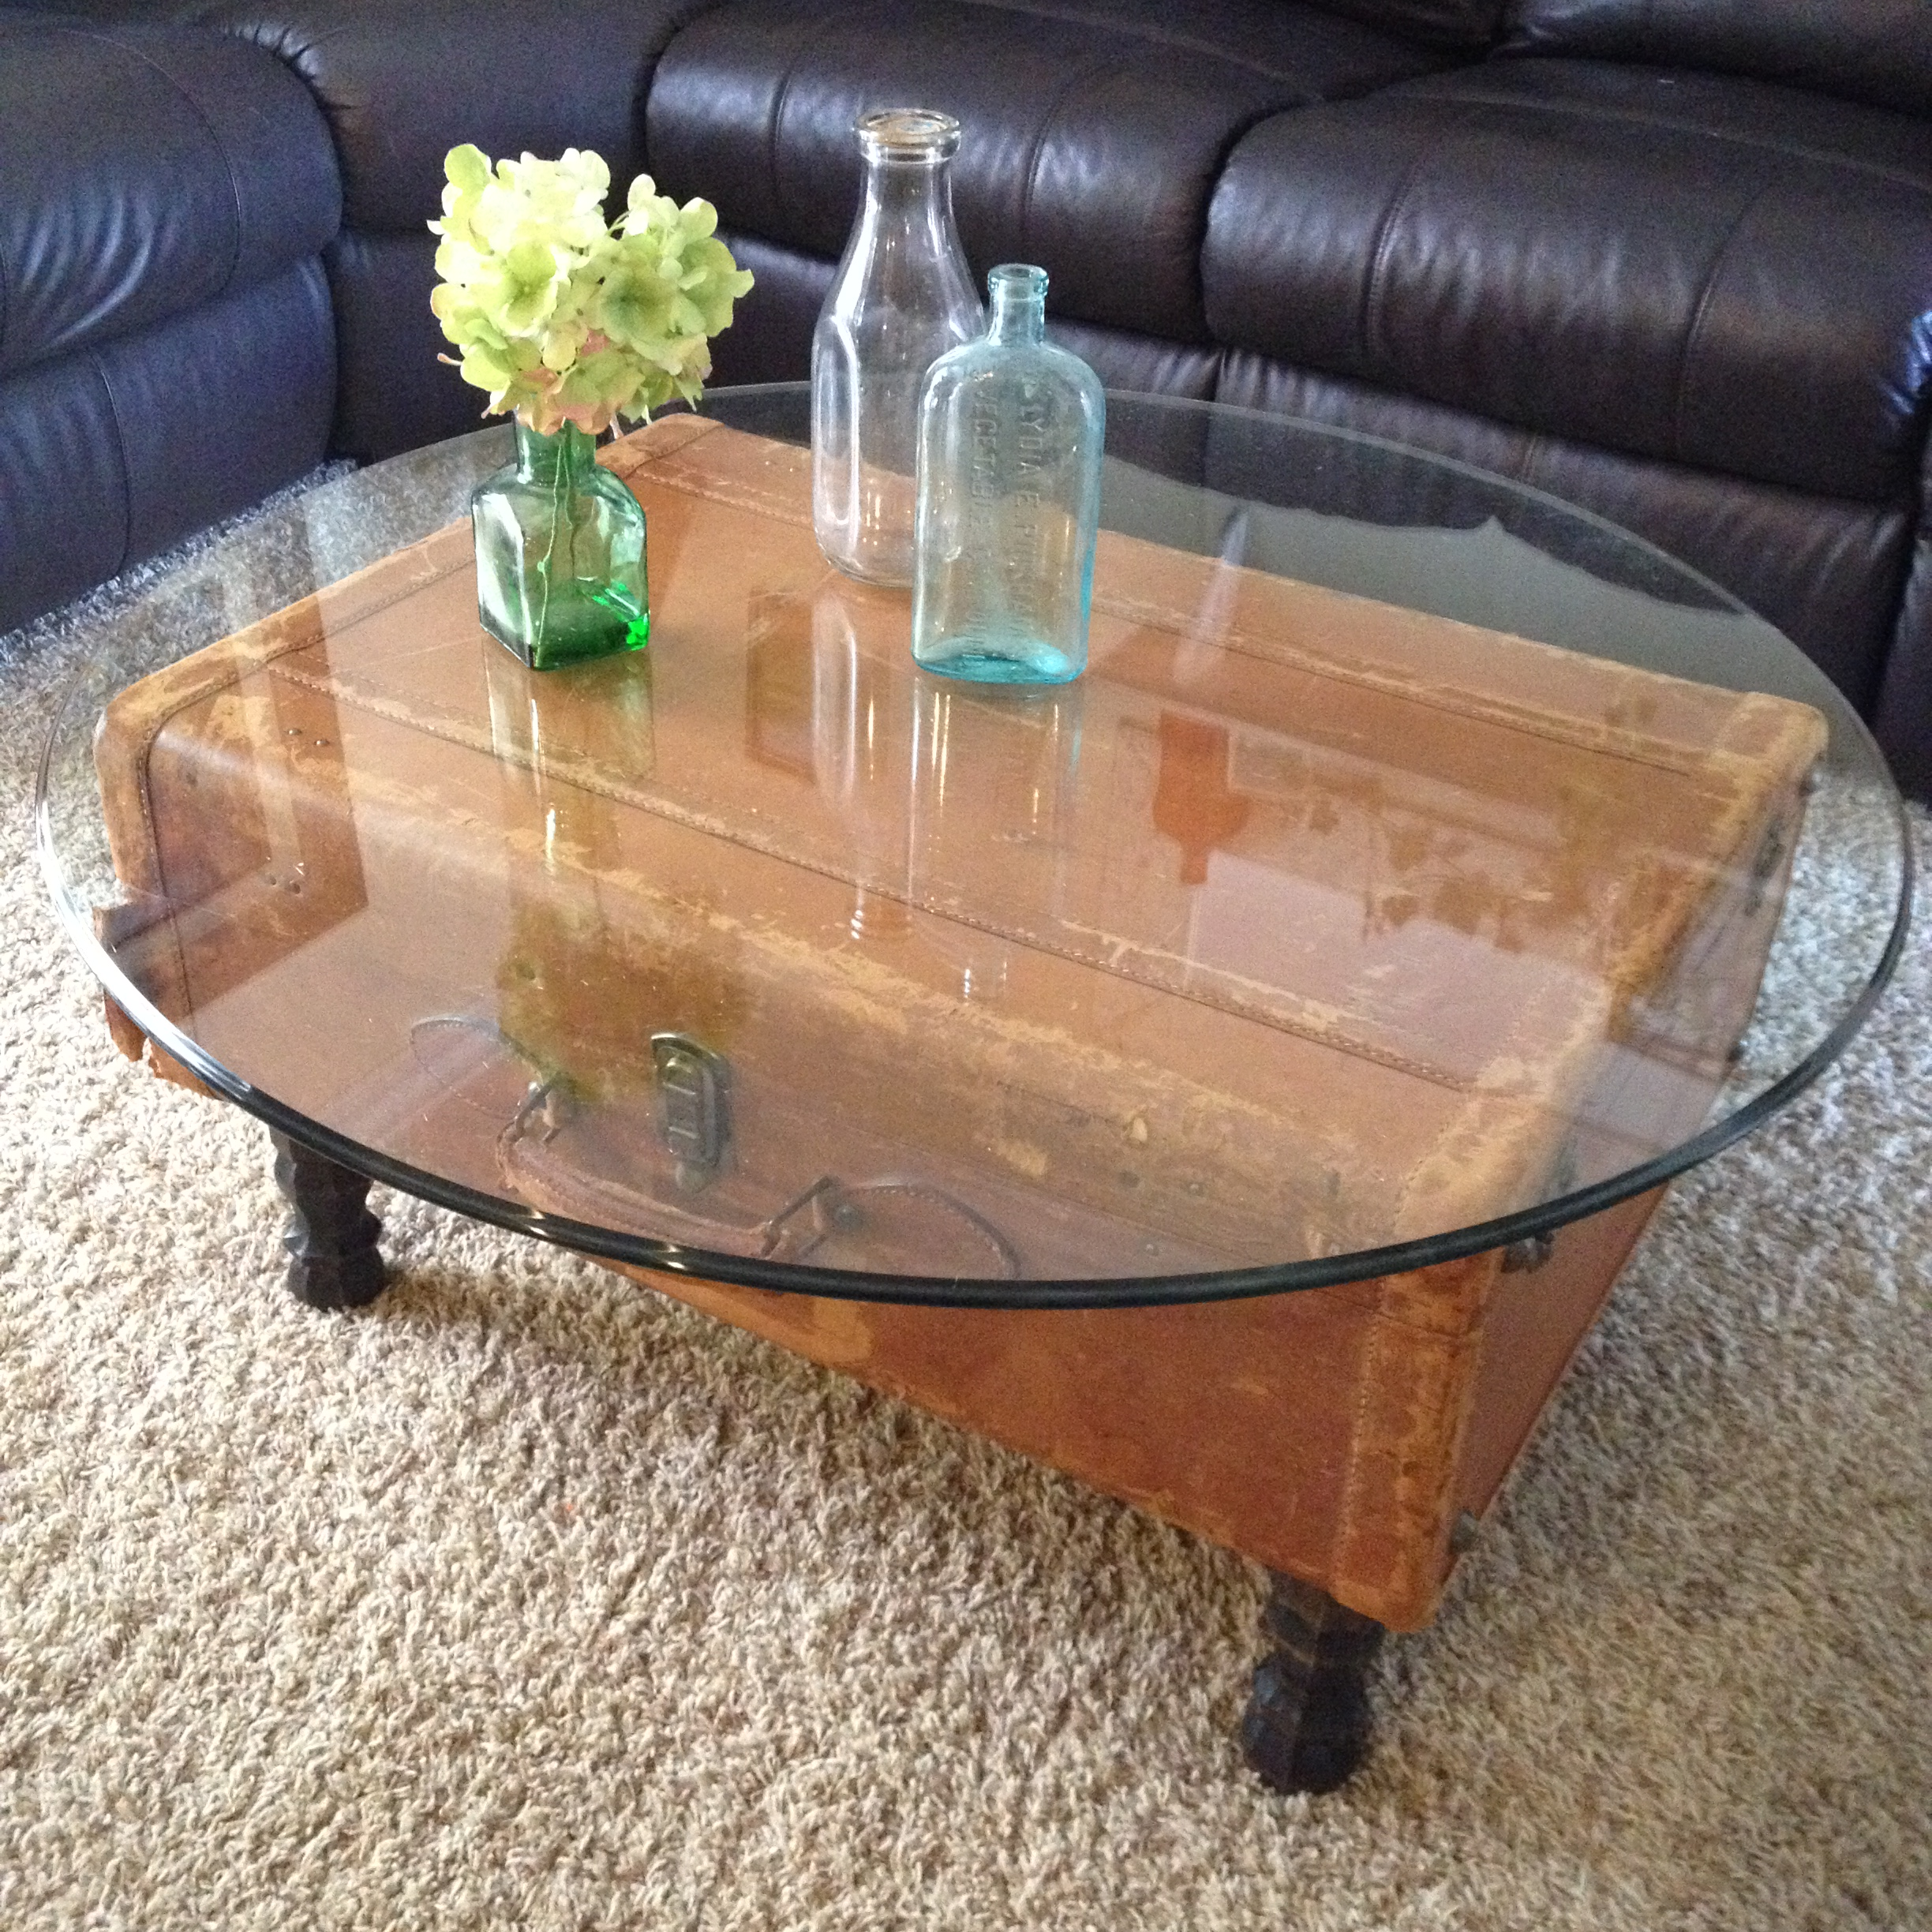 Vintage Leather Suitcase Coffee Table  Goodwill of Orange County Blog